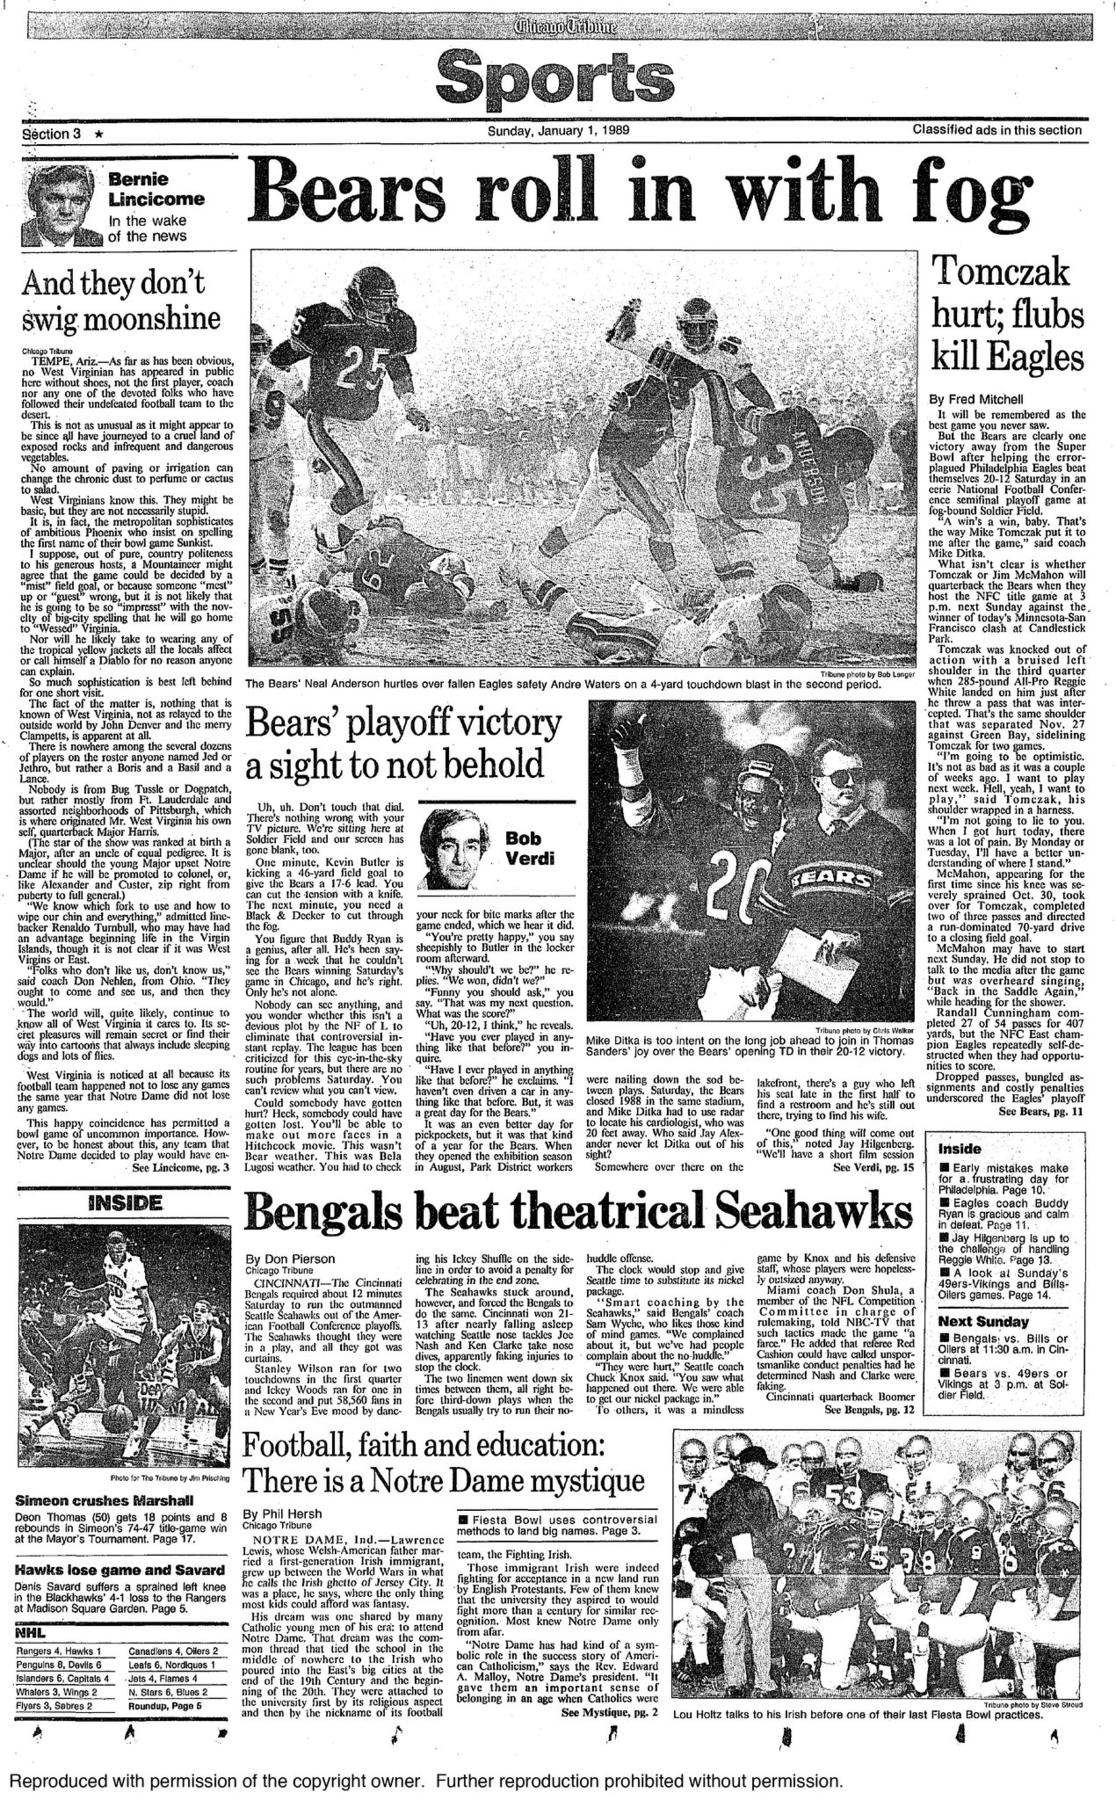 Dec. 31, 1988: Bears roll in with fog